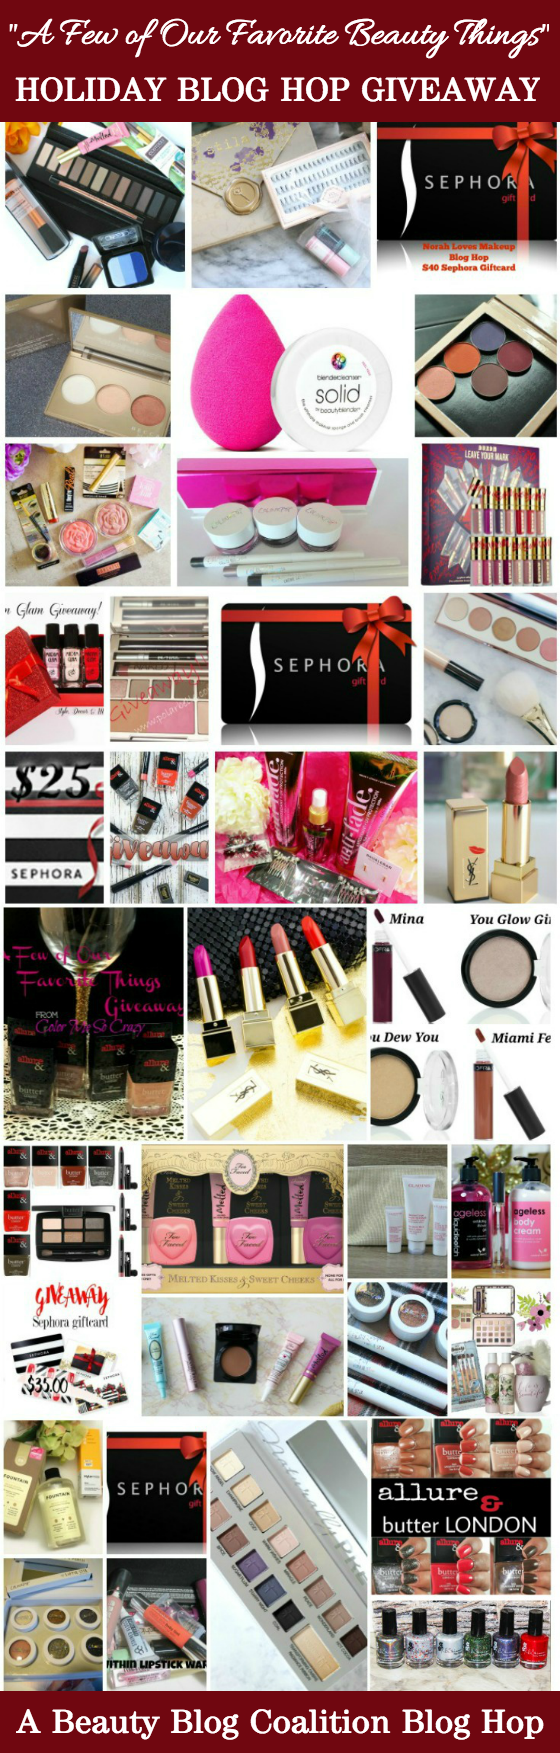 BBC Beauty Blog Hop Holiday Giveaway - 35 Prizes